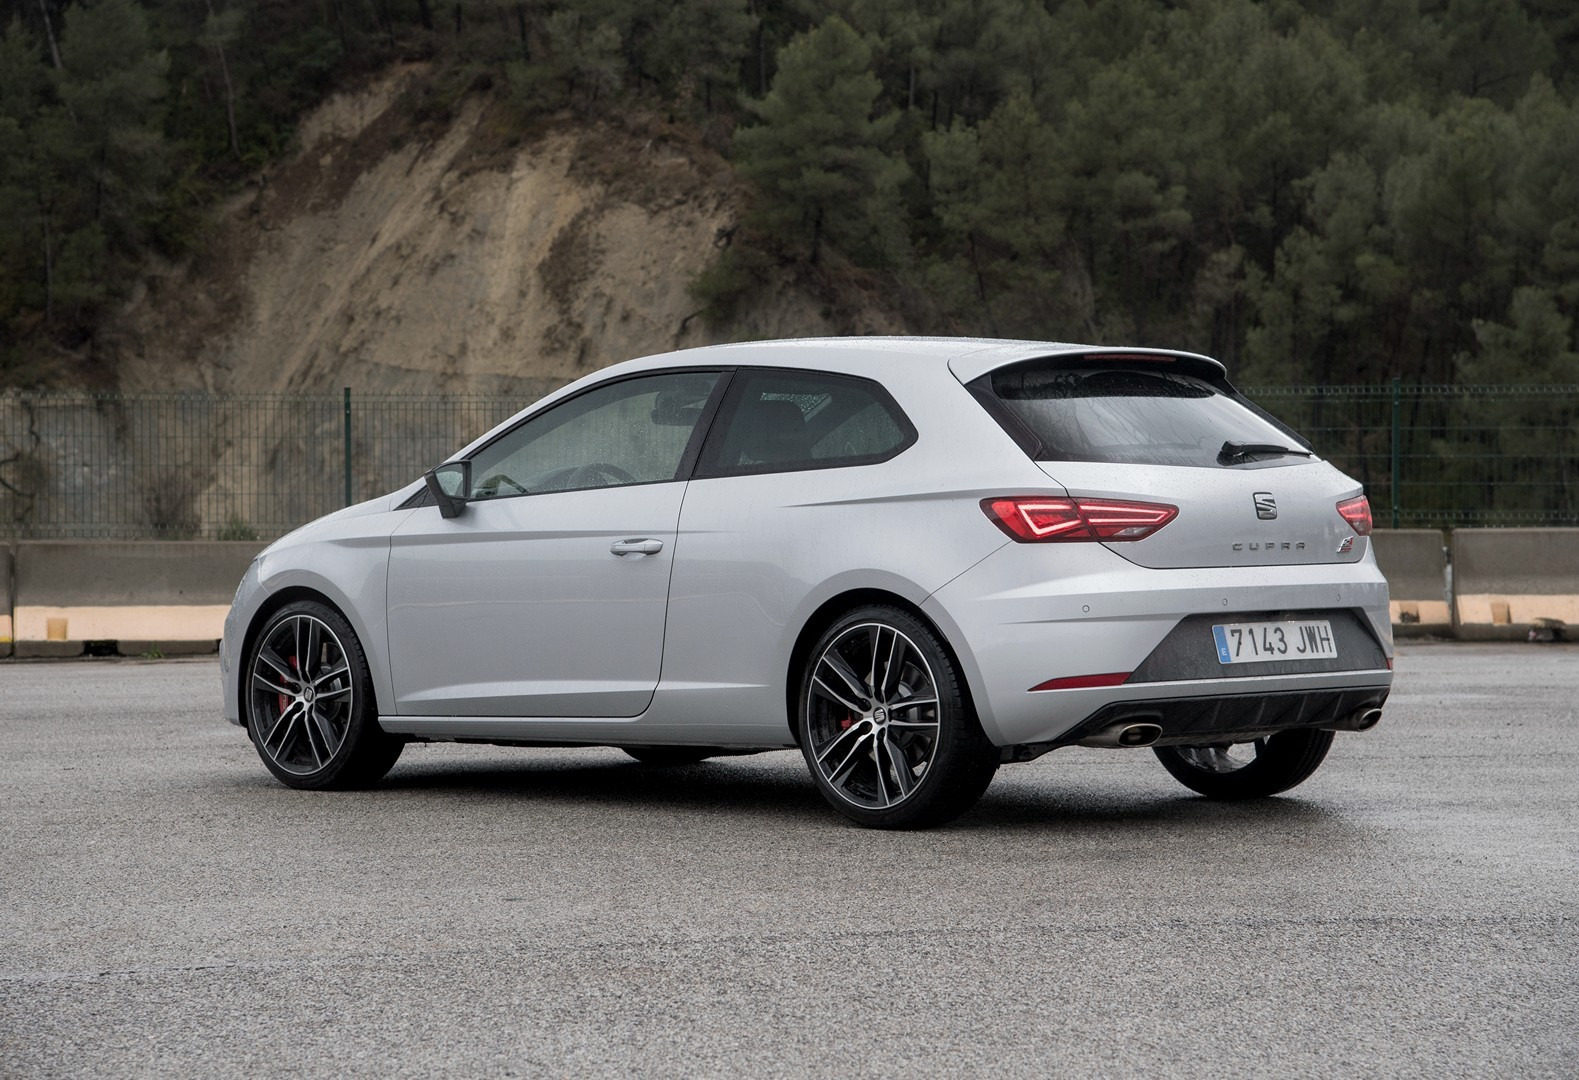 new leon cupra 300 39 s awd system discussed in 1 hour review autoevolution